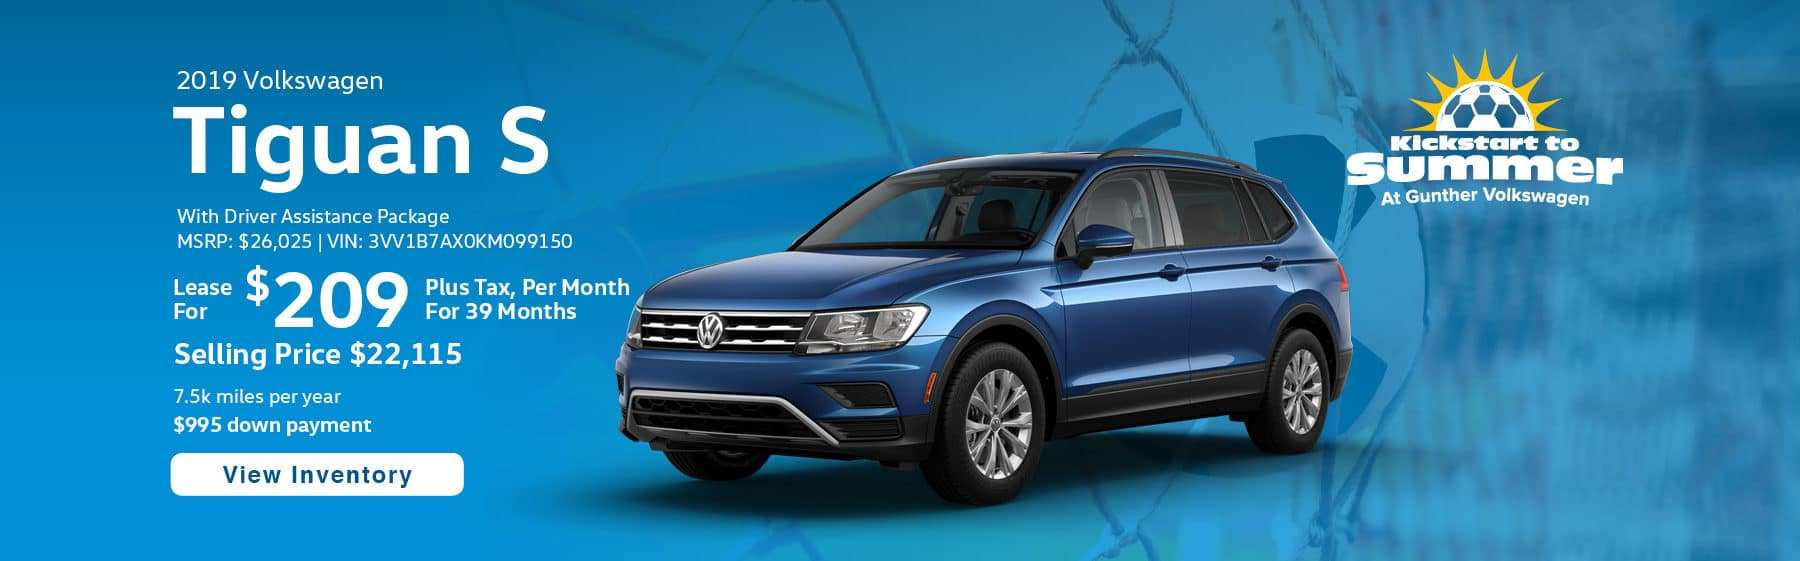 99 The Volkswagen Pay In 2020 Offer Rumors